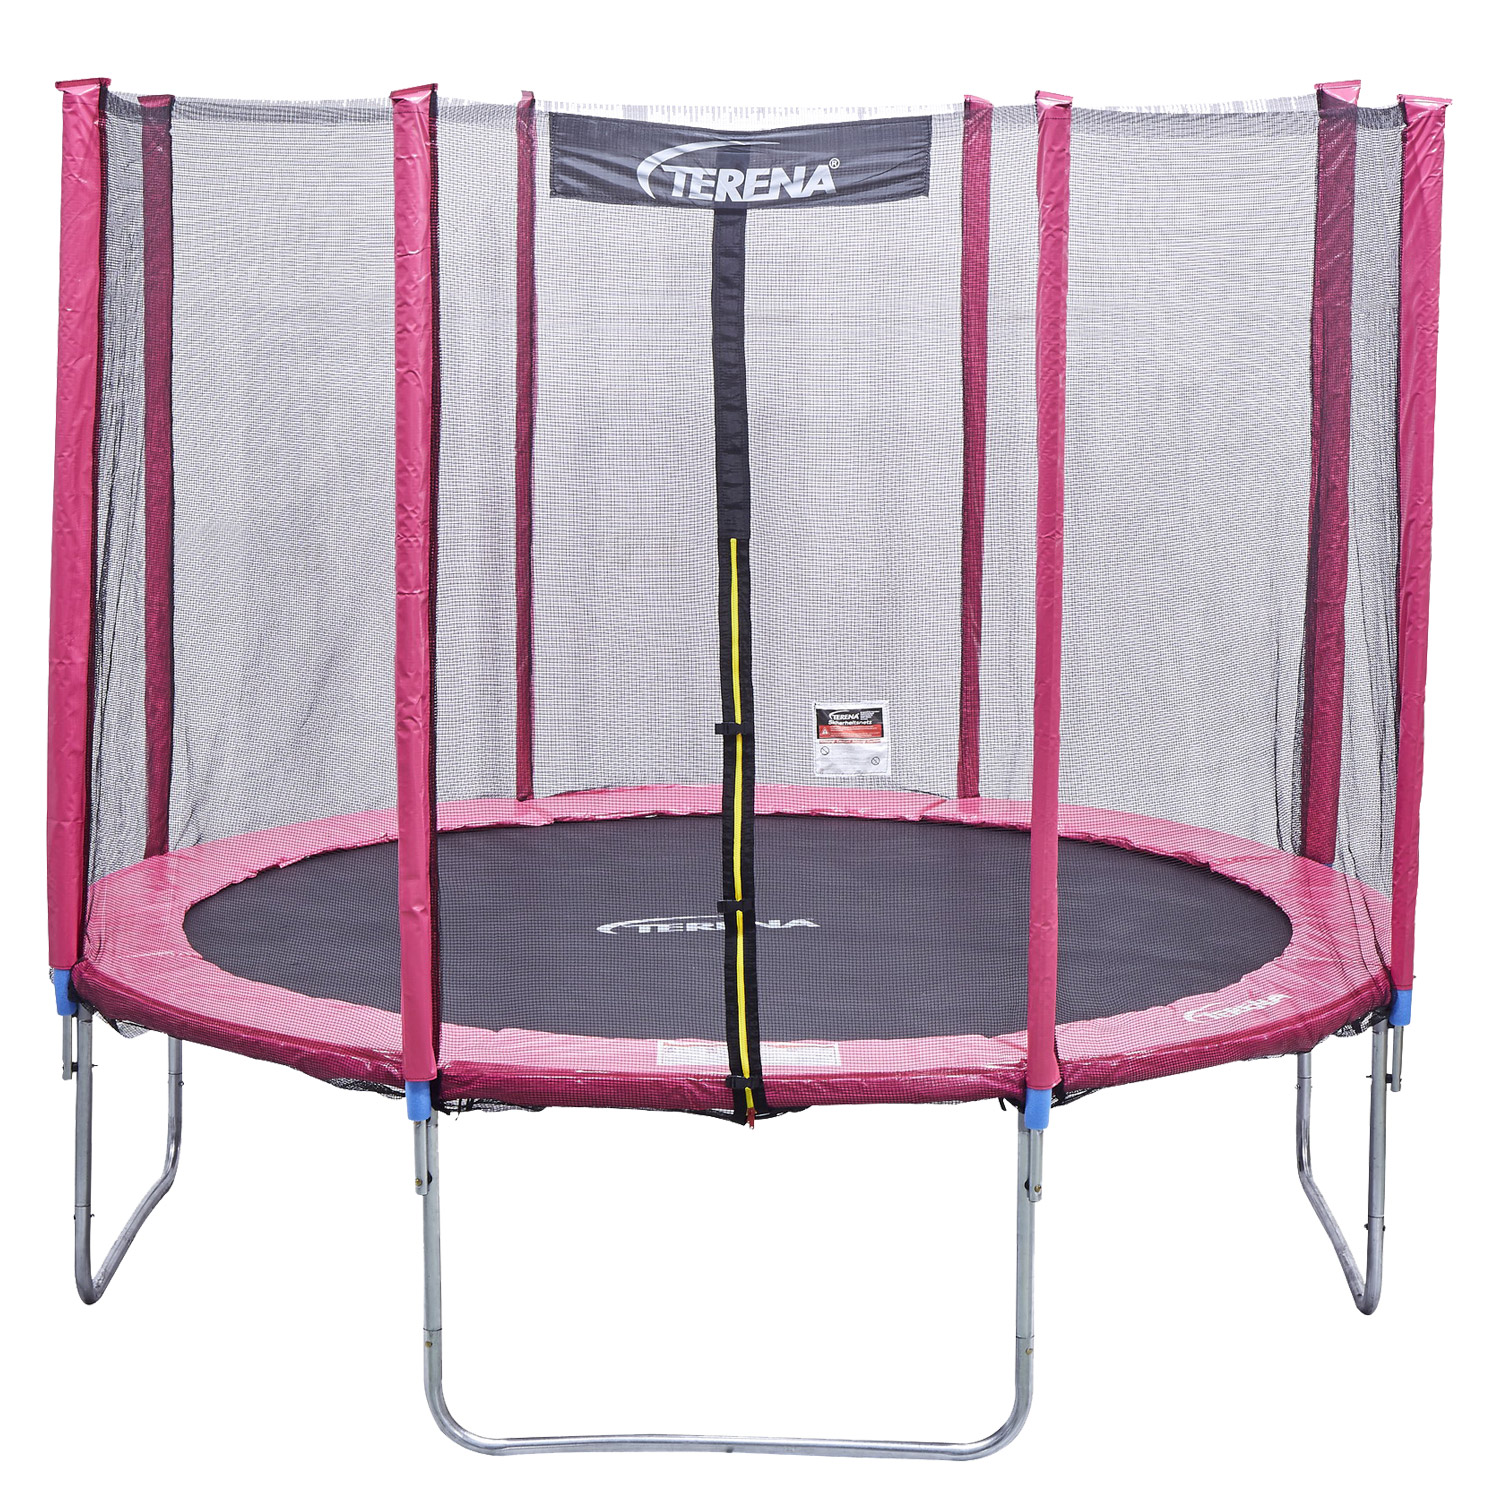 terena ersatznetz sicherheitsnetz pink f r trampolin 366 cm 8 stangen. Black Bedroom Furniture Sets. Home Design Ideas